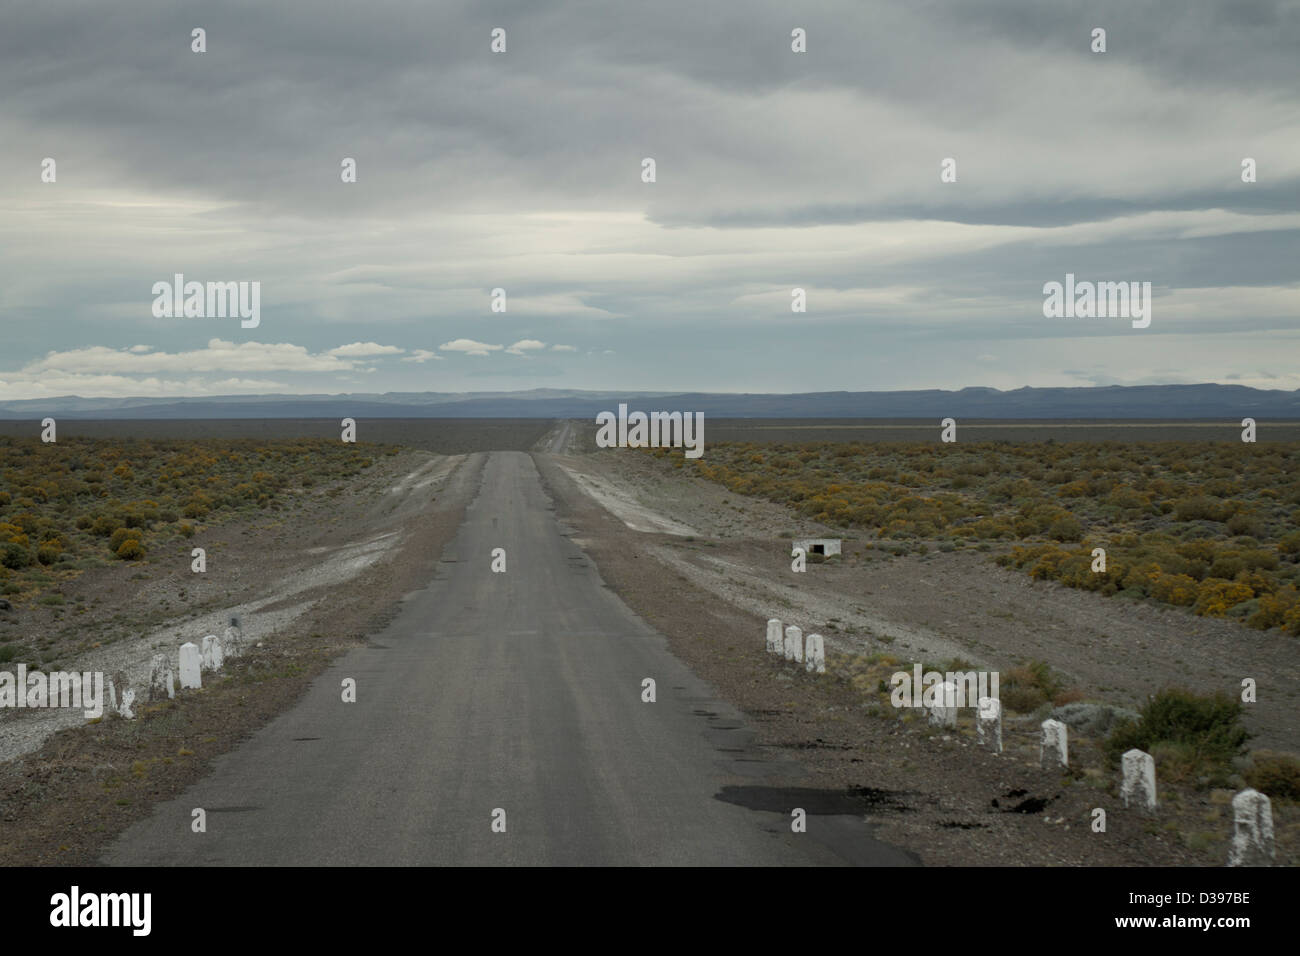 Argentina's Ruta 40 stretches into the horizon - Stock Image